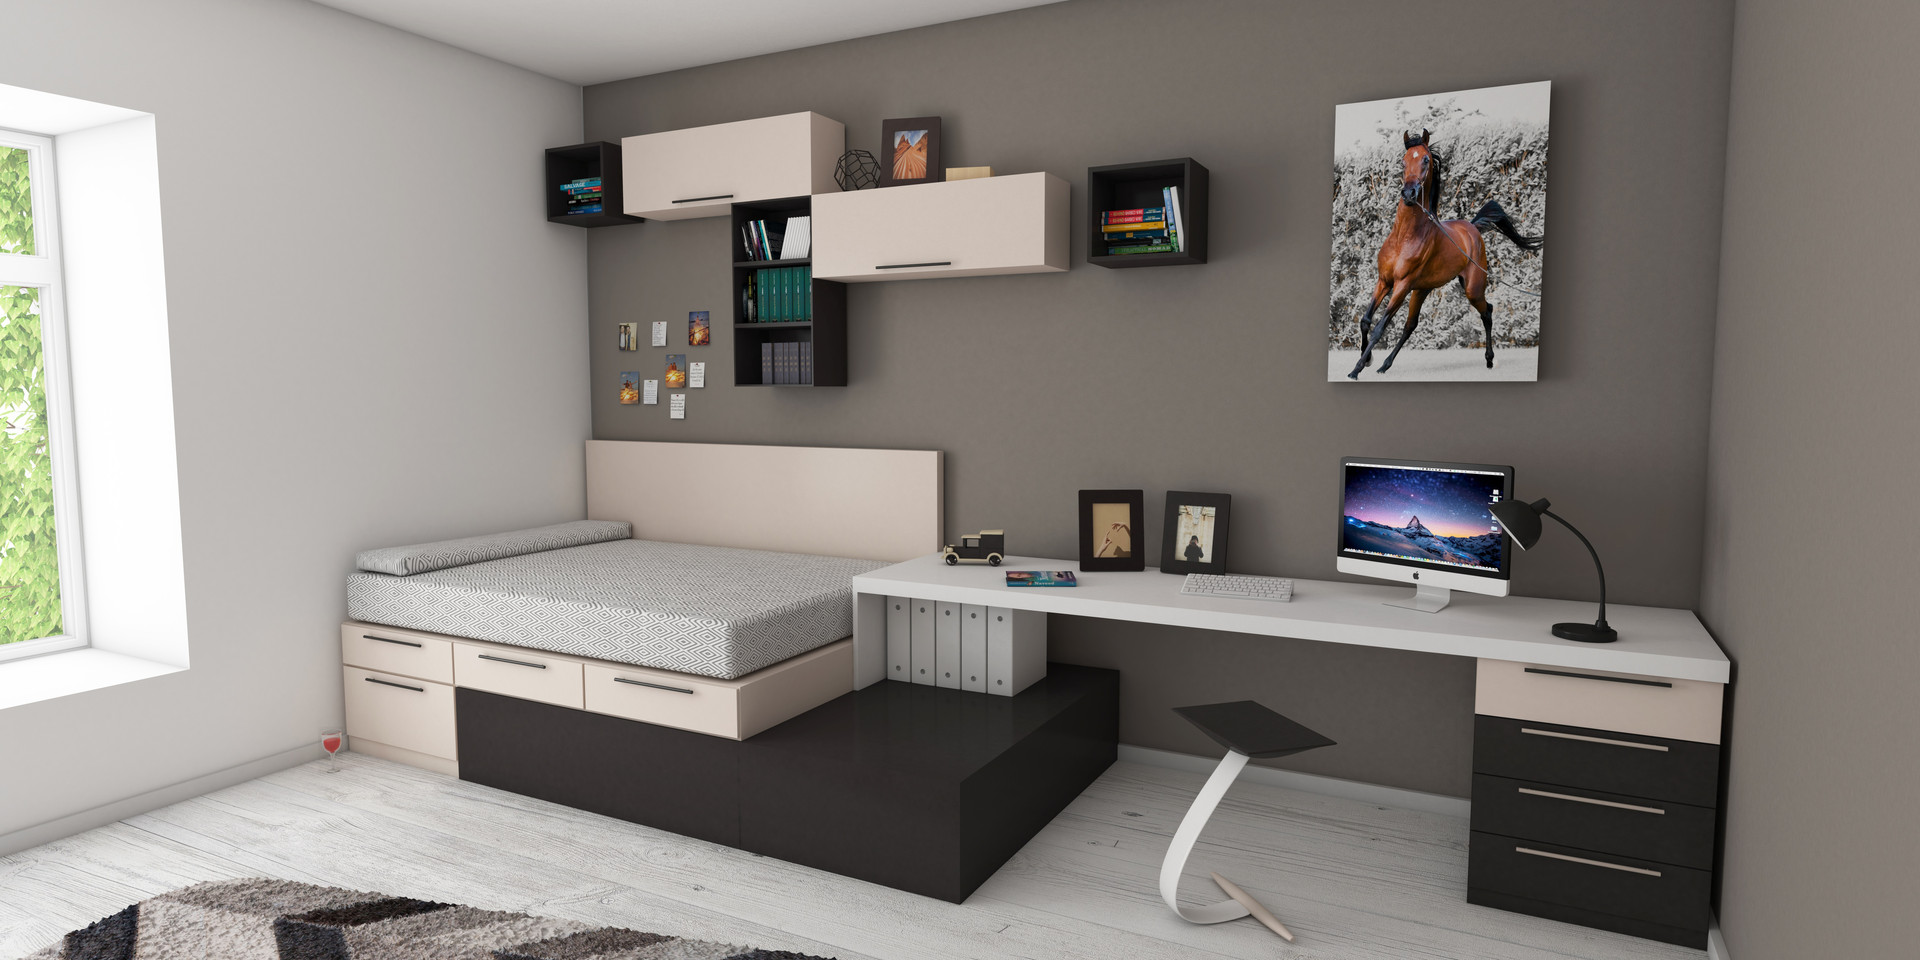 apartment-bed-bedroom-439227.jpg